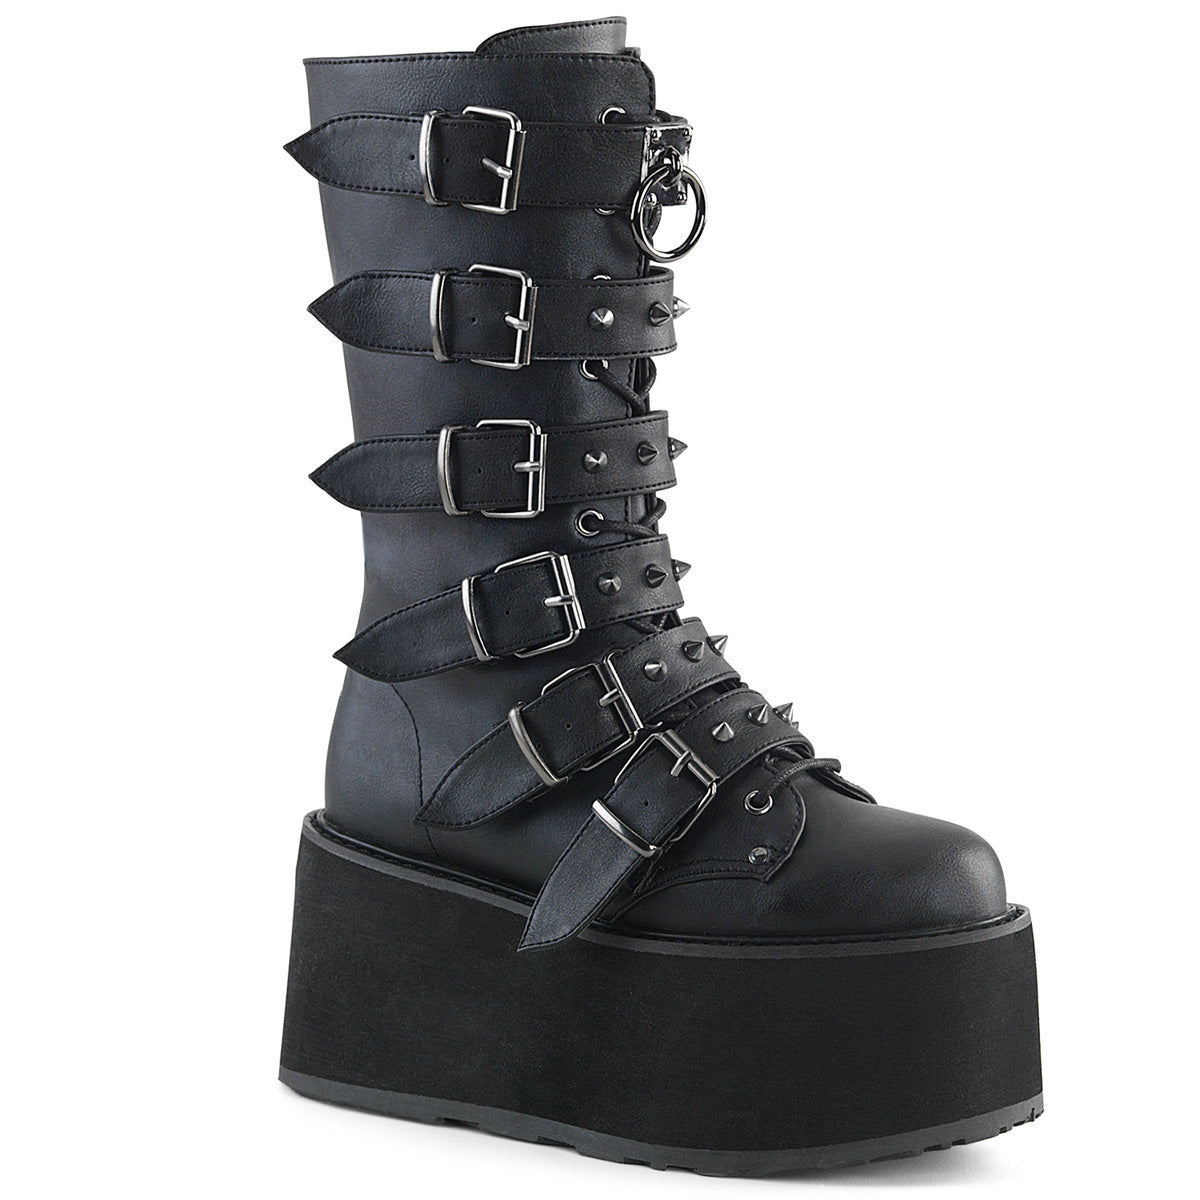 "3 1/2"" PF Mid-Calf Boot w/ 6 Buckle Straps, Metal Side Zip"